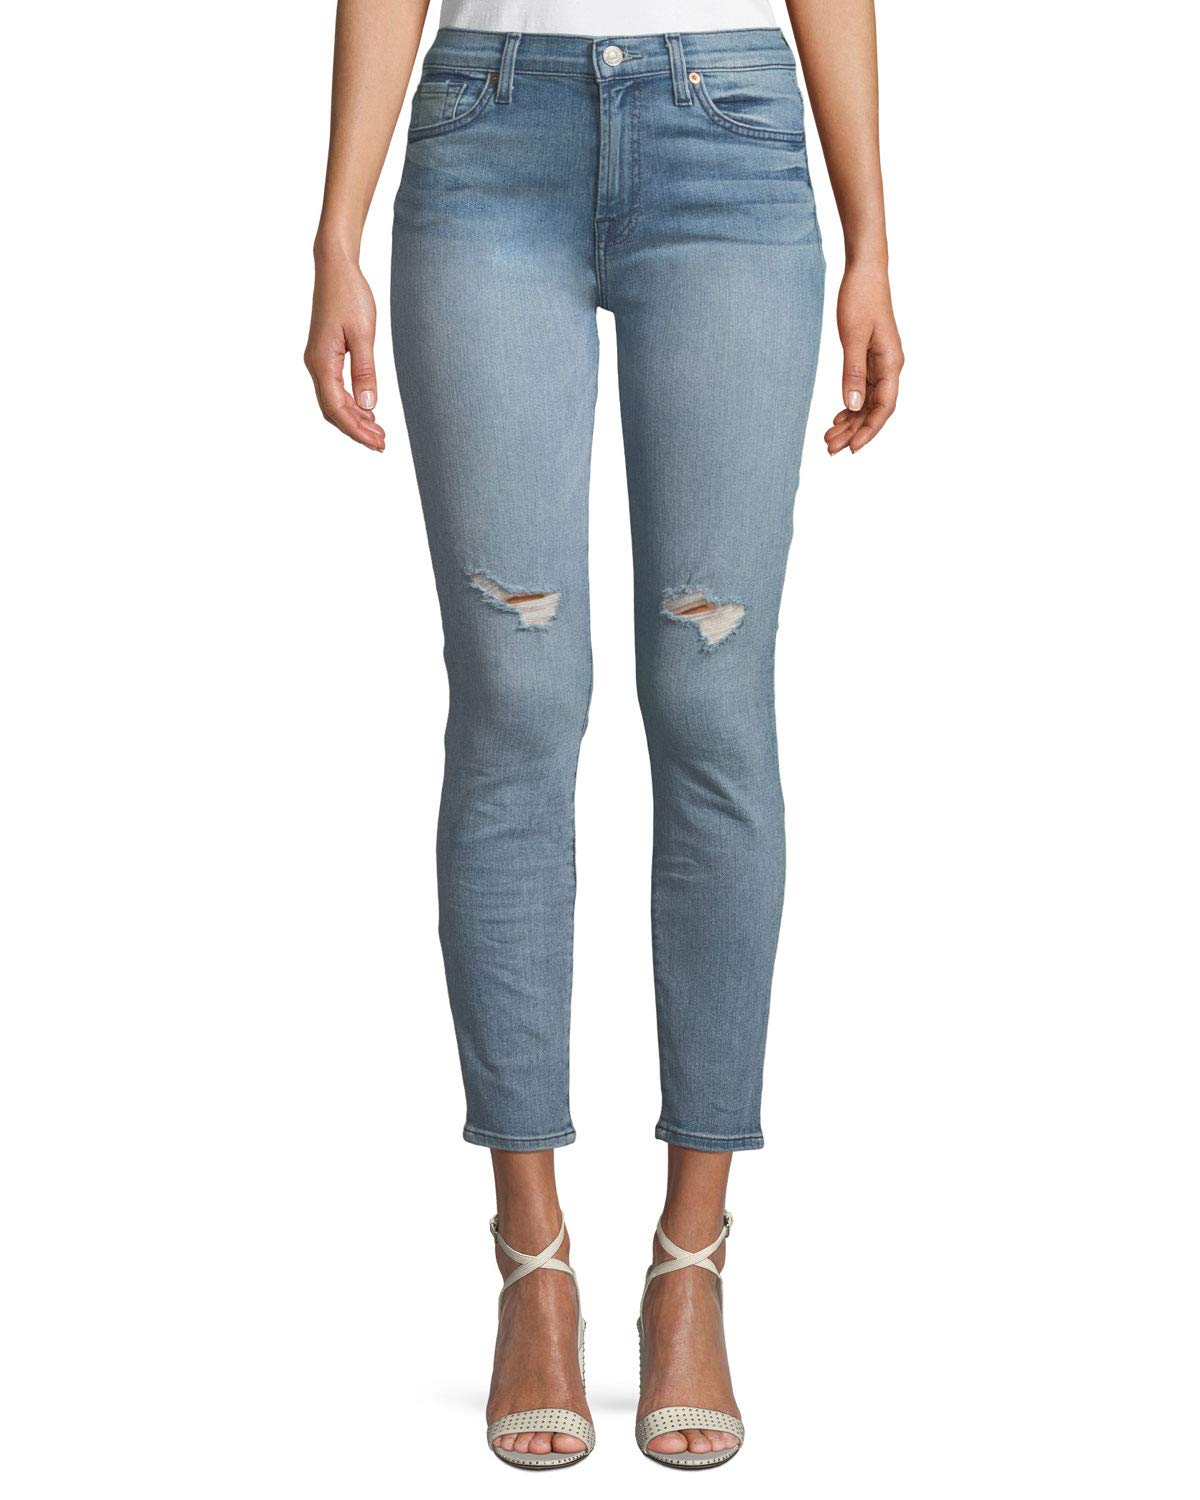 7 For All Mankind Women's Gwenevere Ankle Skinny Mid Rise Jean